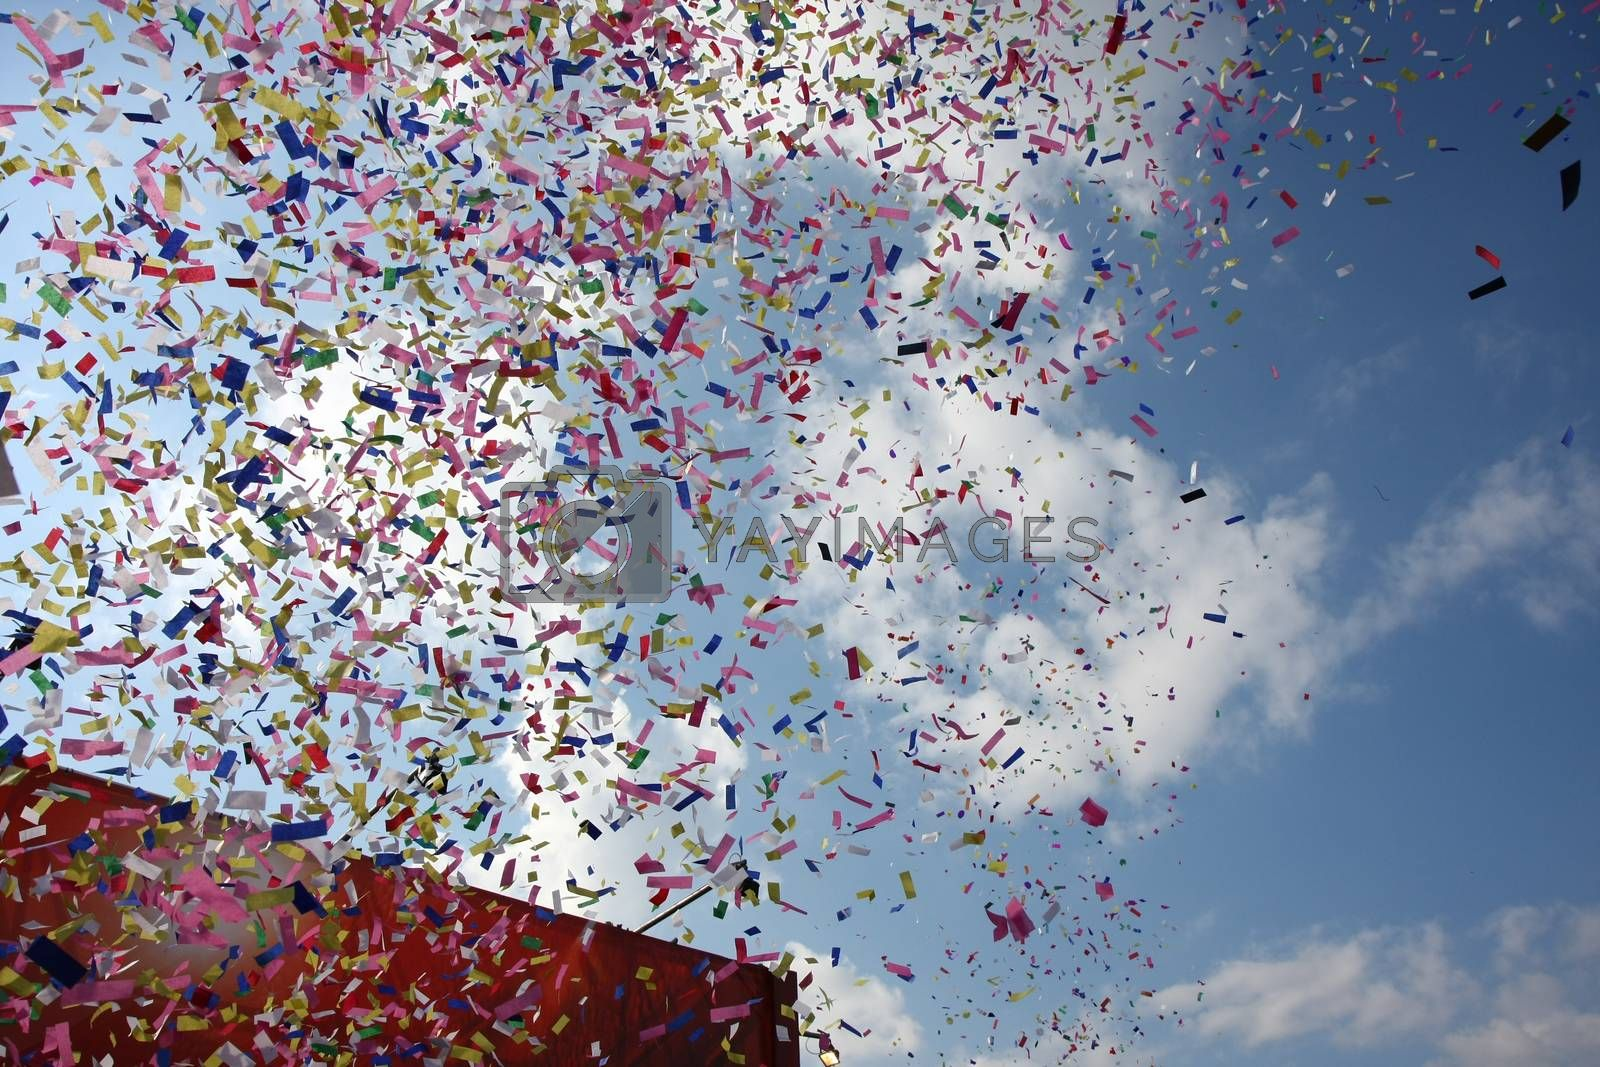 Celebration with Colorful confetti wiith blue sky in the background